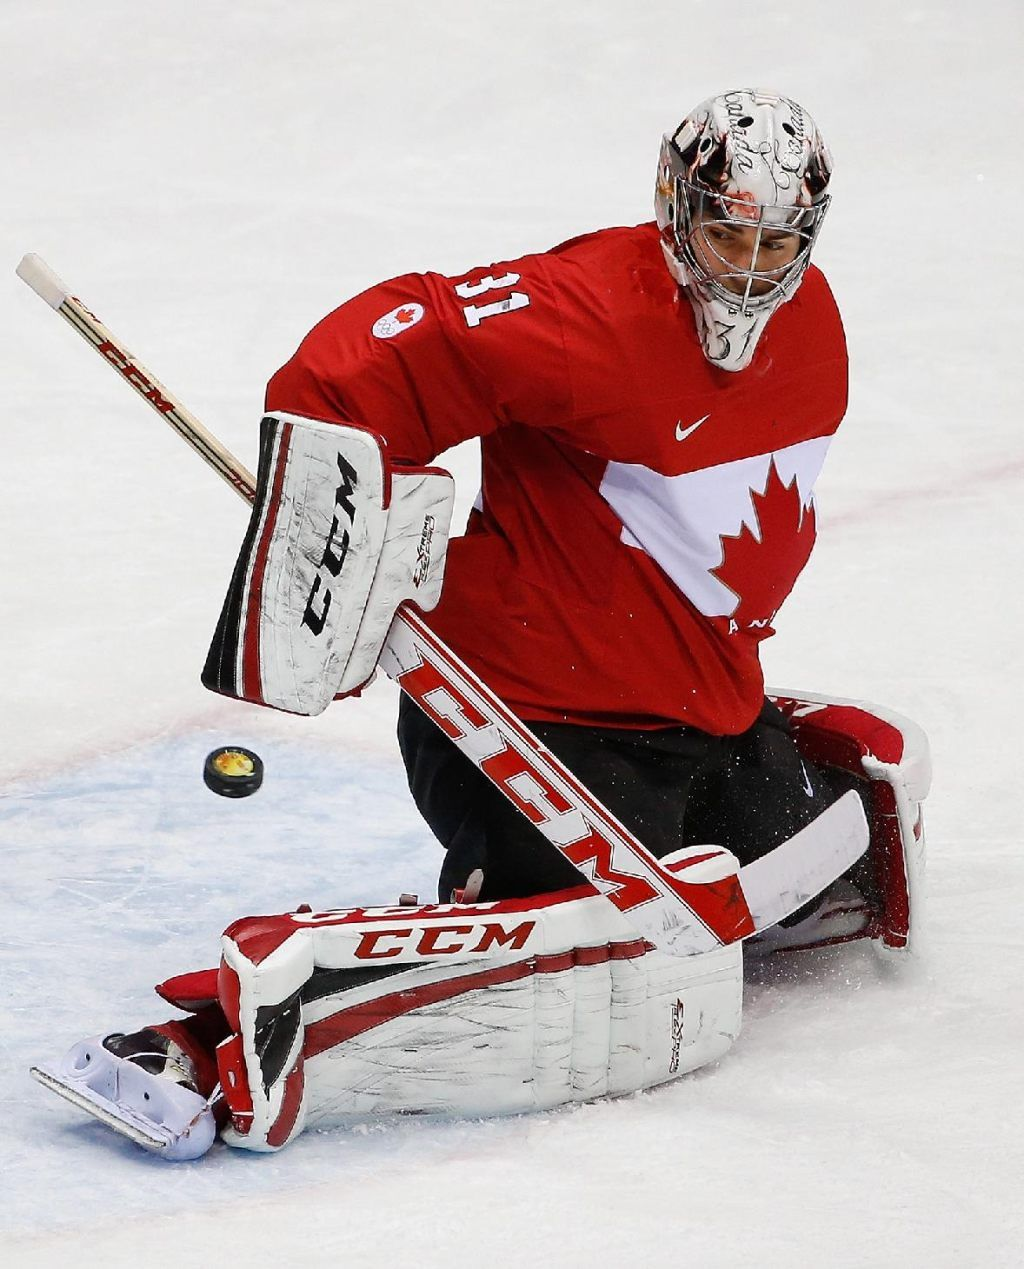 Carey Price blocks a shot on goal during the gold medal game against Sweden at the 2014 Winter Olympics. • AP Photo/Petr David Josek